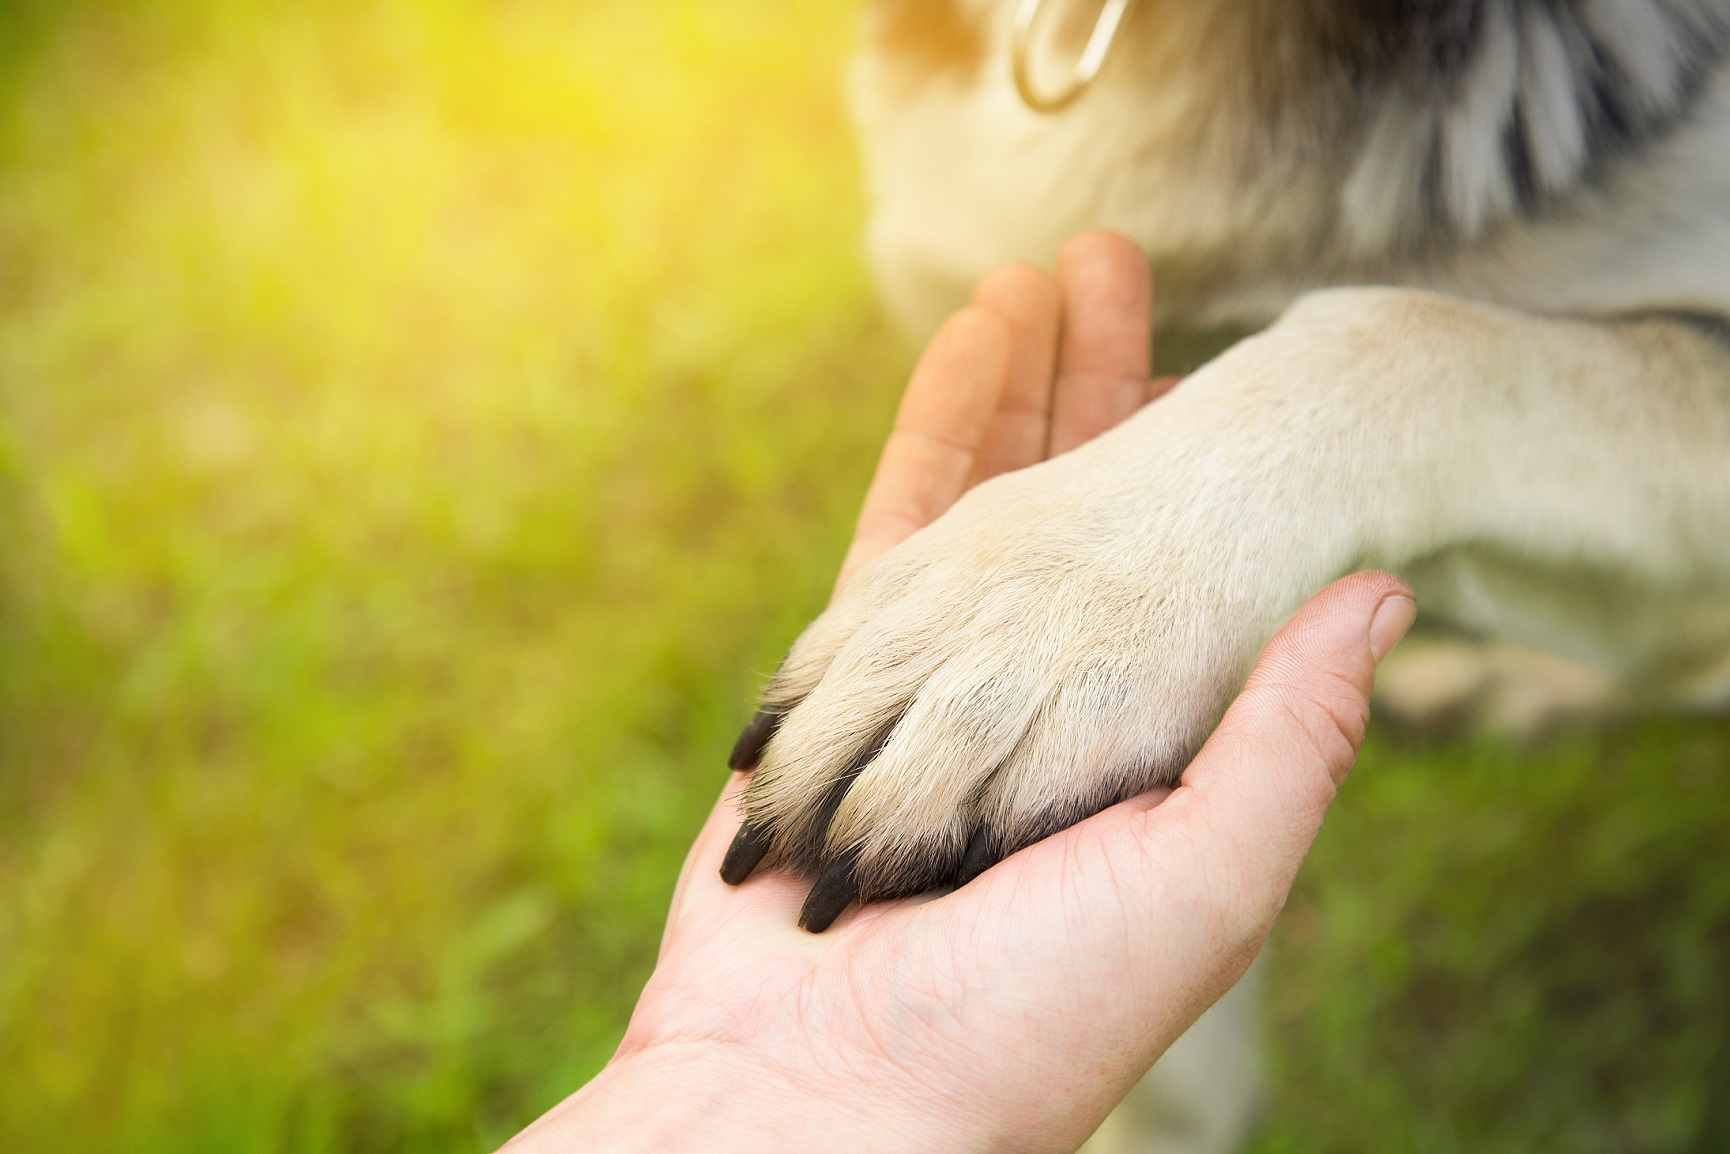 A Man Holds The Paw Of The Dog In The Park In The Summer At Suns